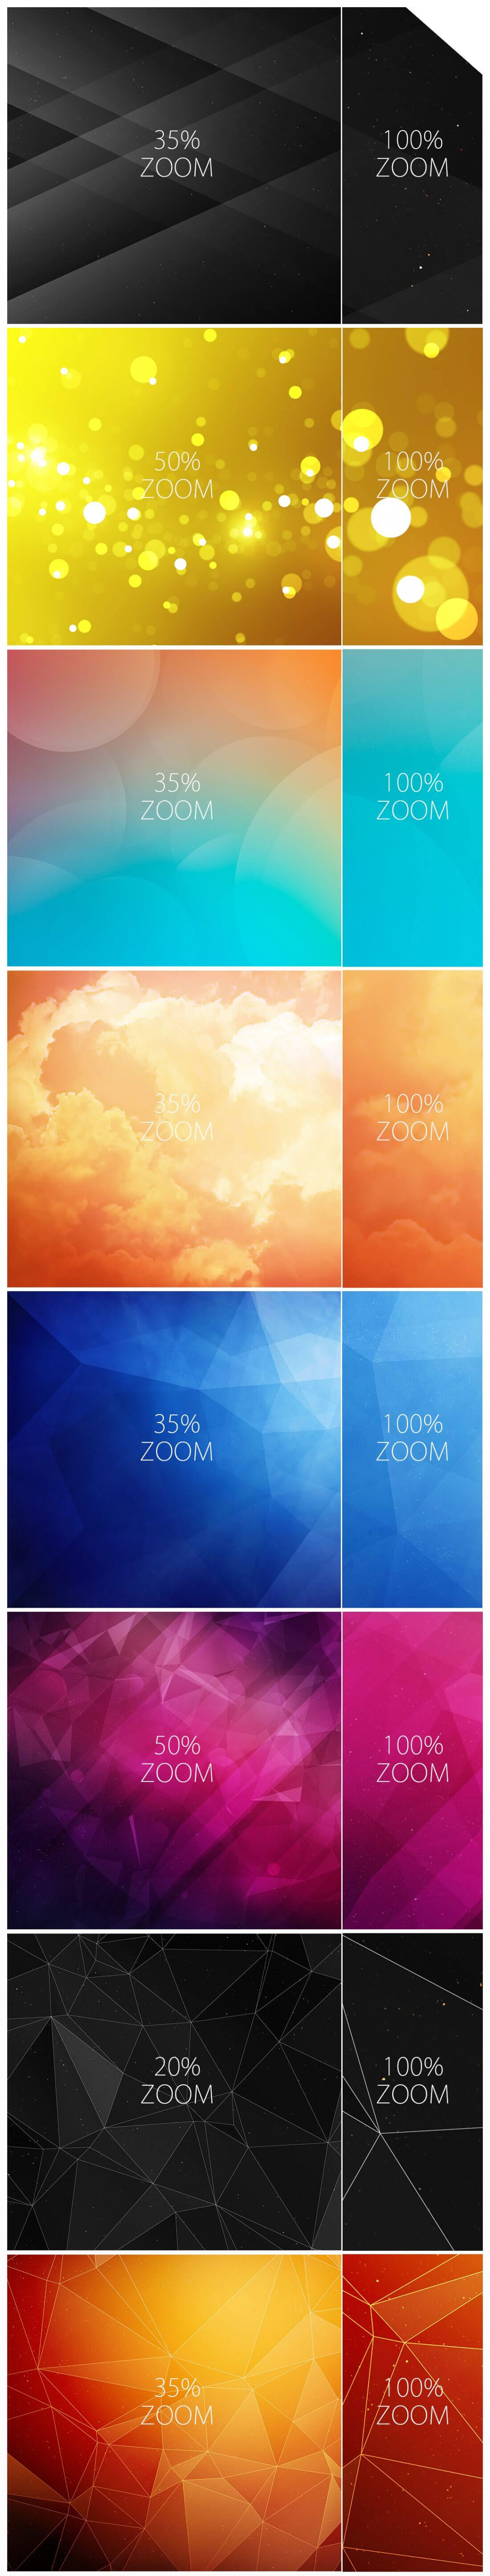 Abstract-Polygon-Backgrounds-prevA